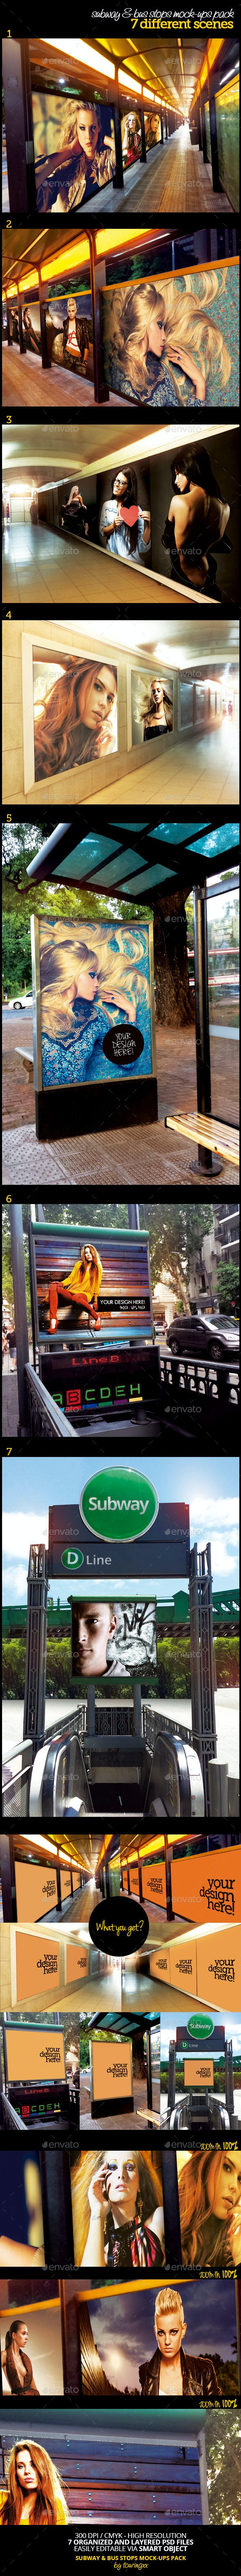 Subway & Bus Stops Mock-Ups Template Pack - Product Mock-Ups Graphics